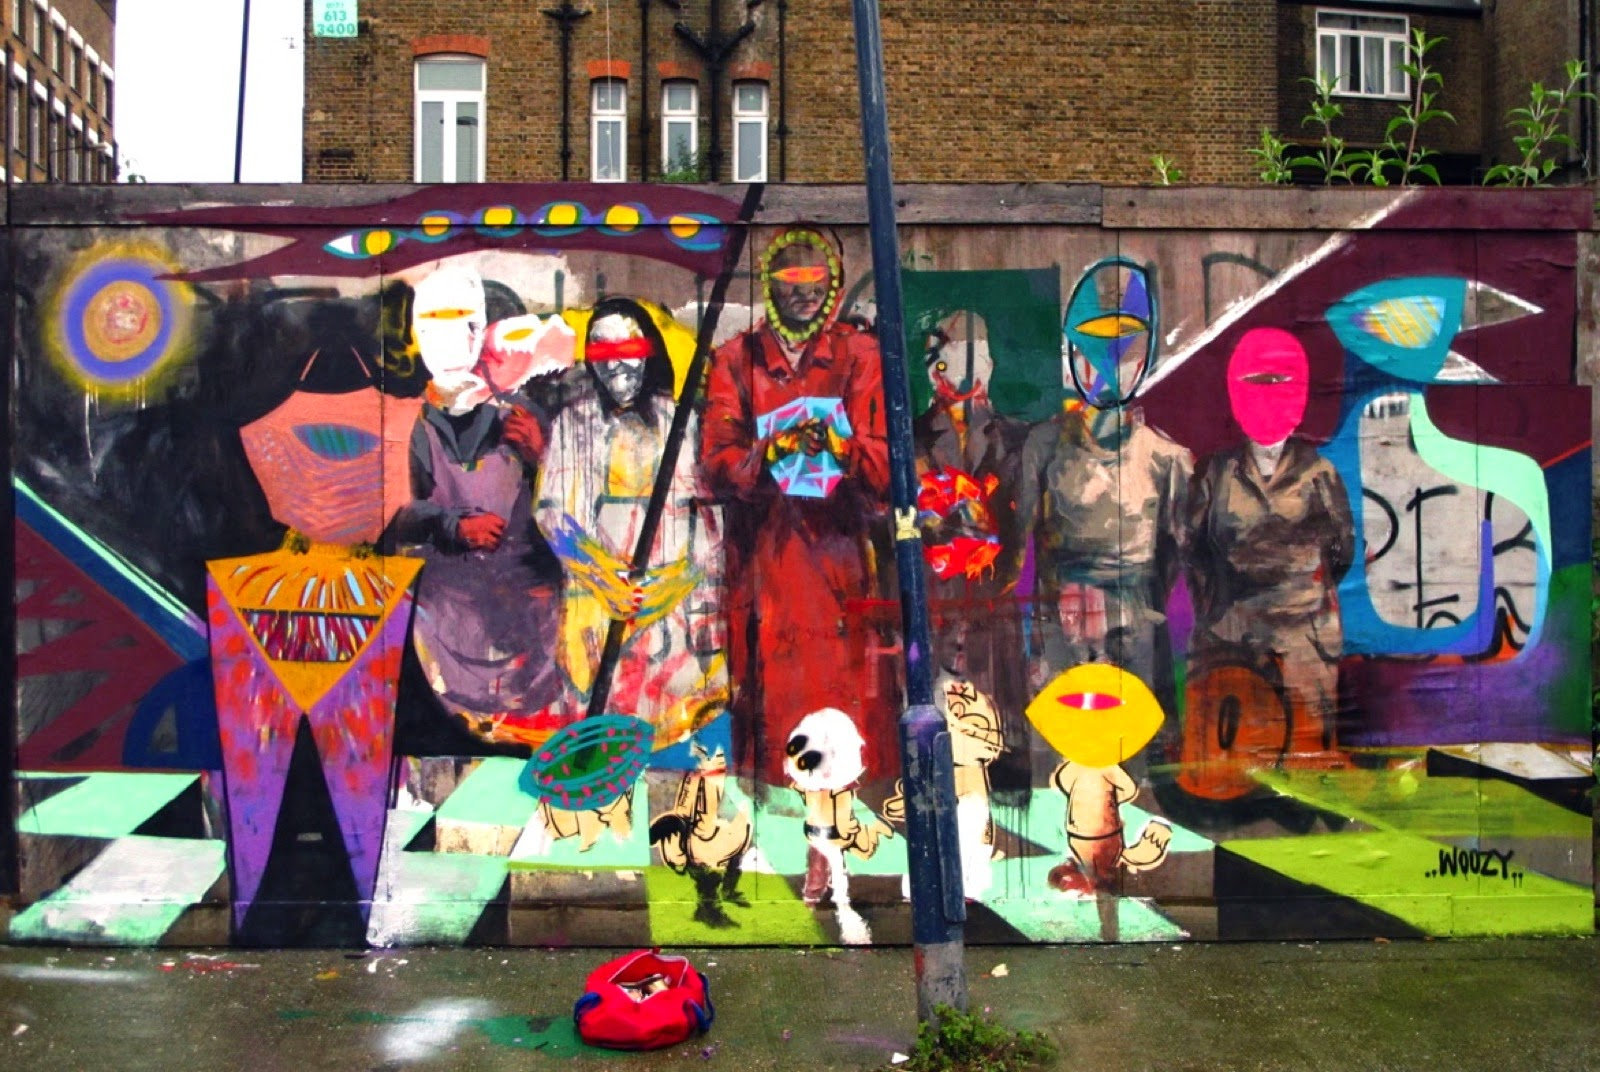 Borondo recently teamed up with his friend Woozy to work on these new collaborations on the streets of East London, UK.